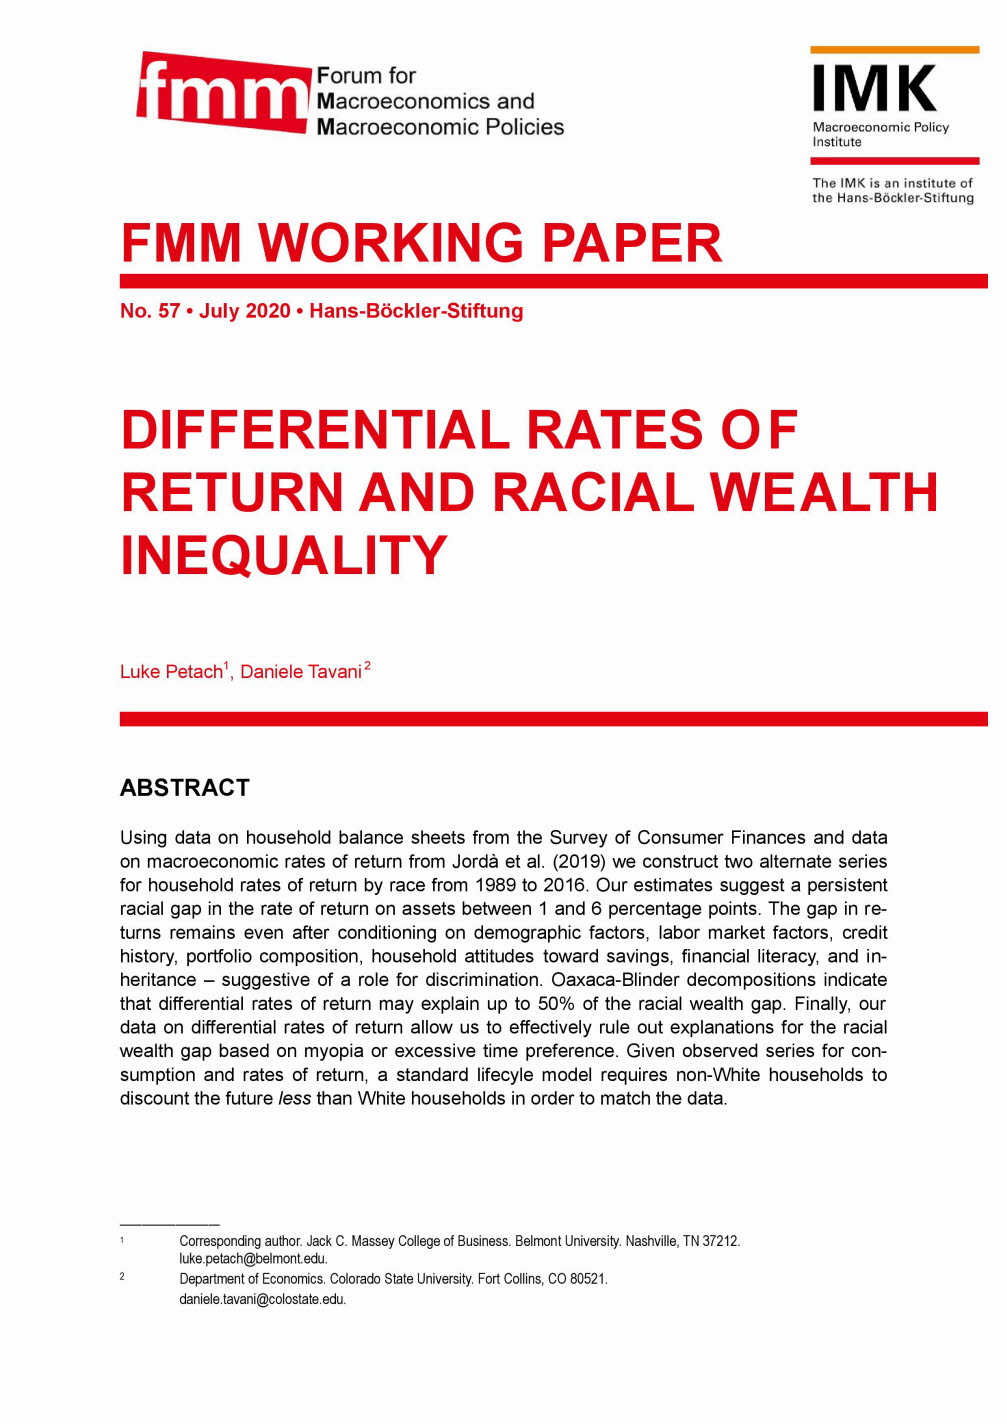 Differential rates of return and racial wealth inequality